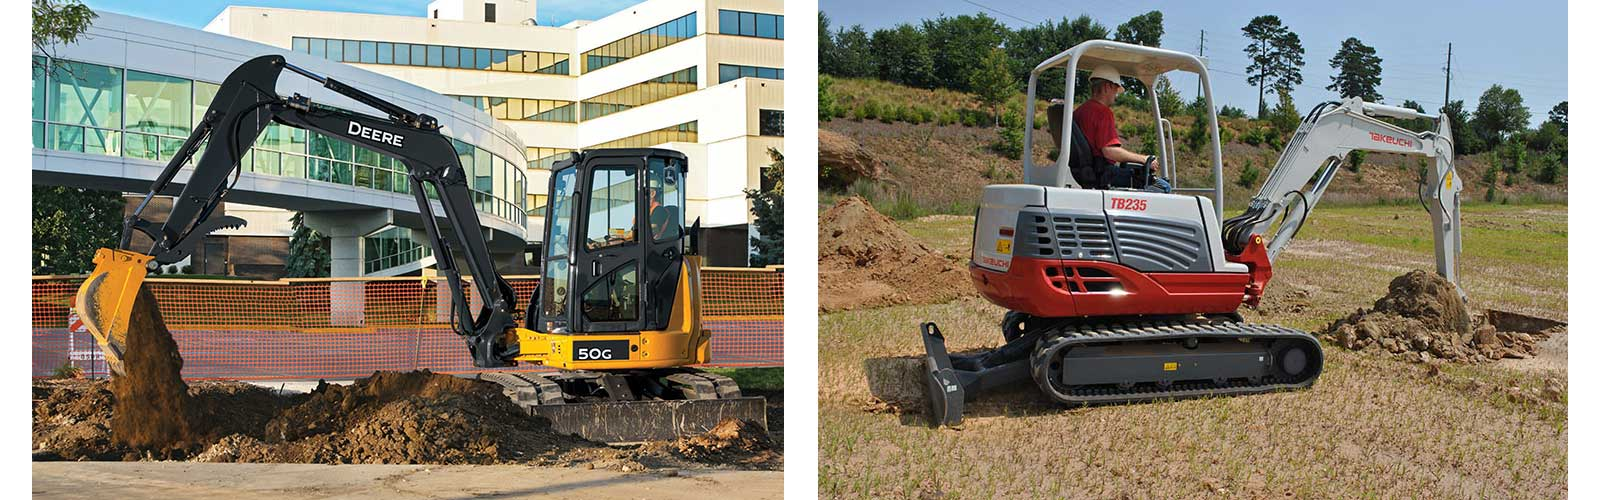 Equipment Rentals in Canton CT, the Farmington Valley, and Northwest Connecticut